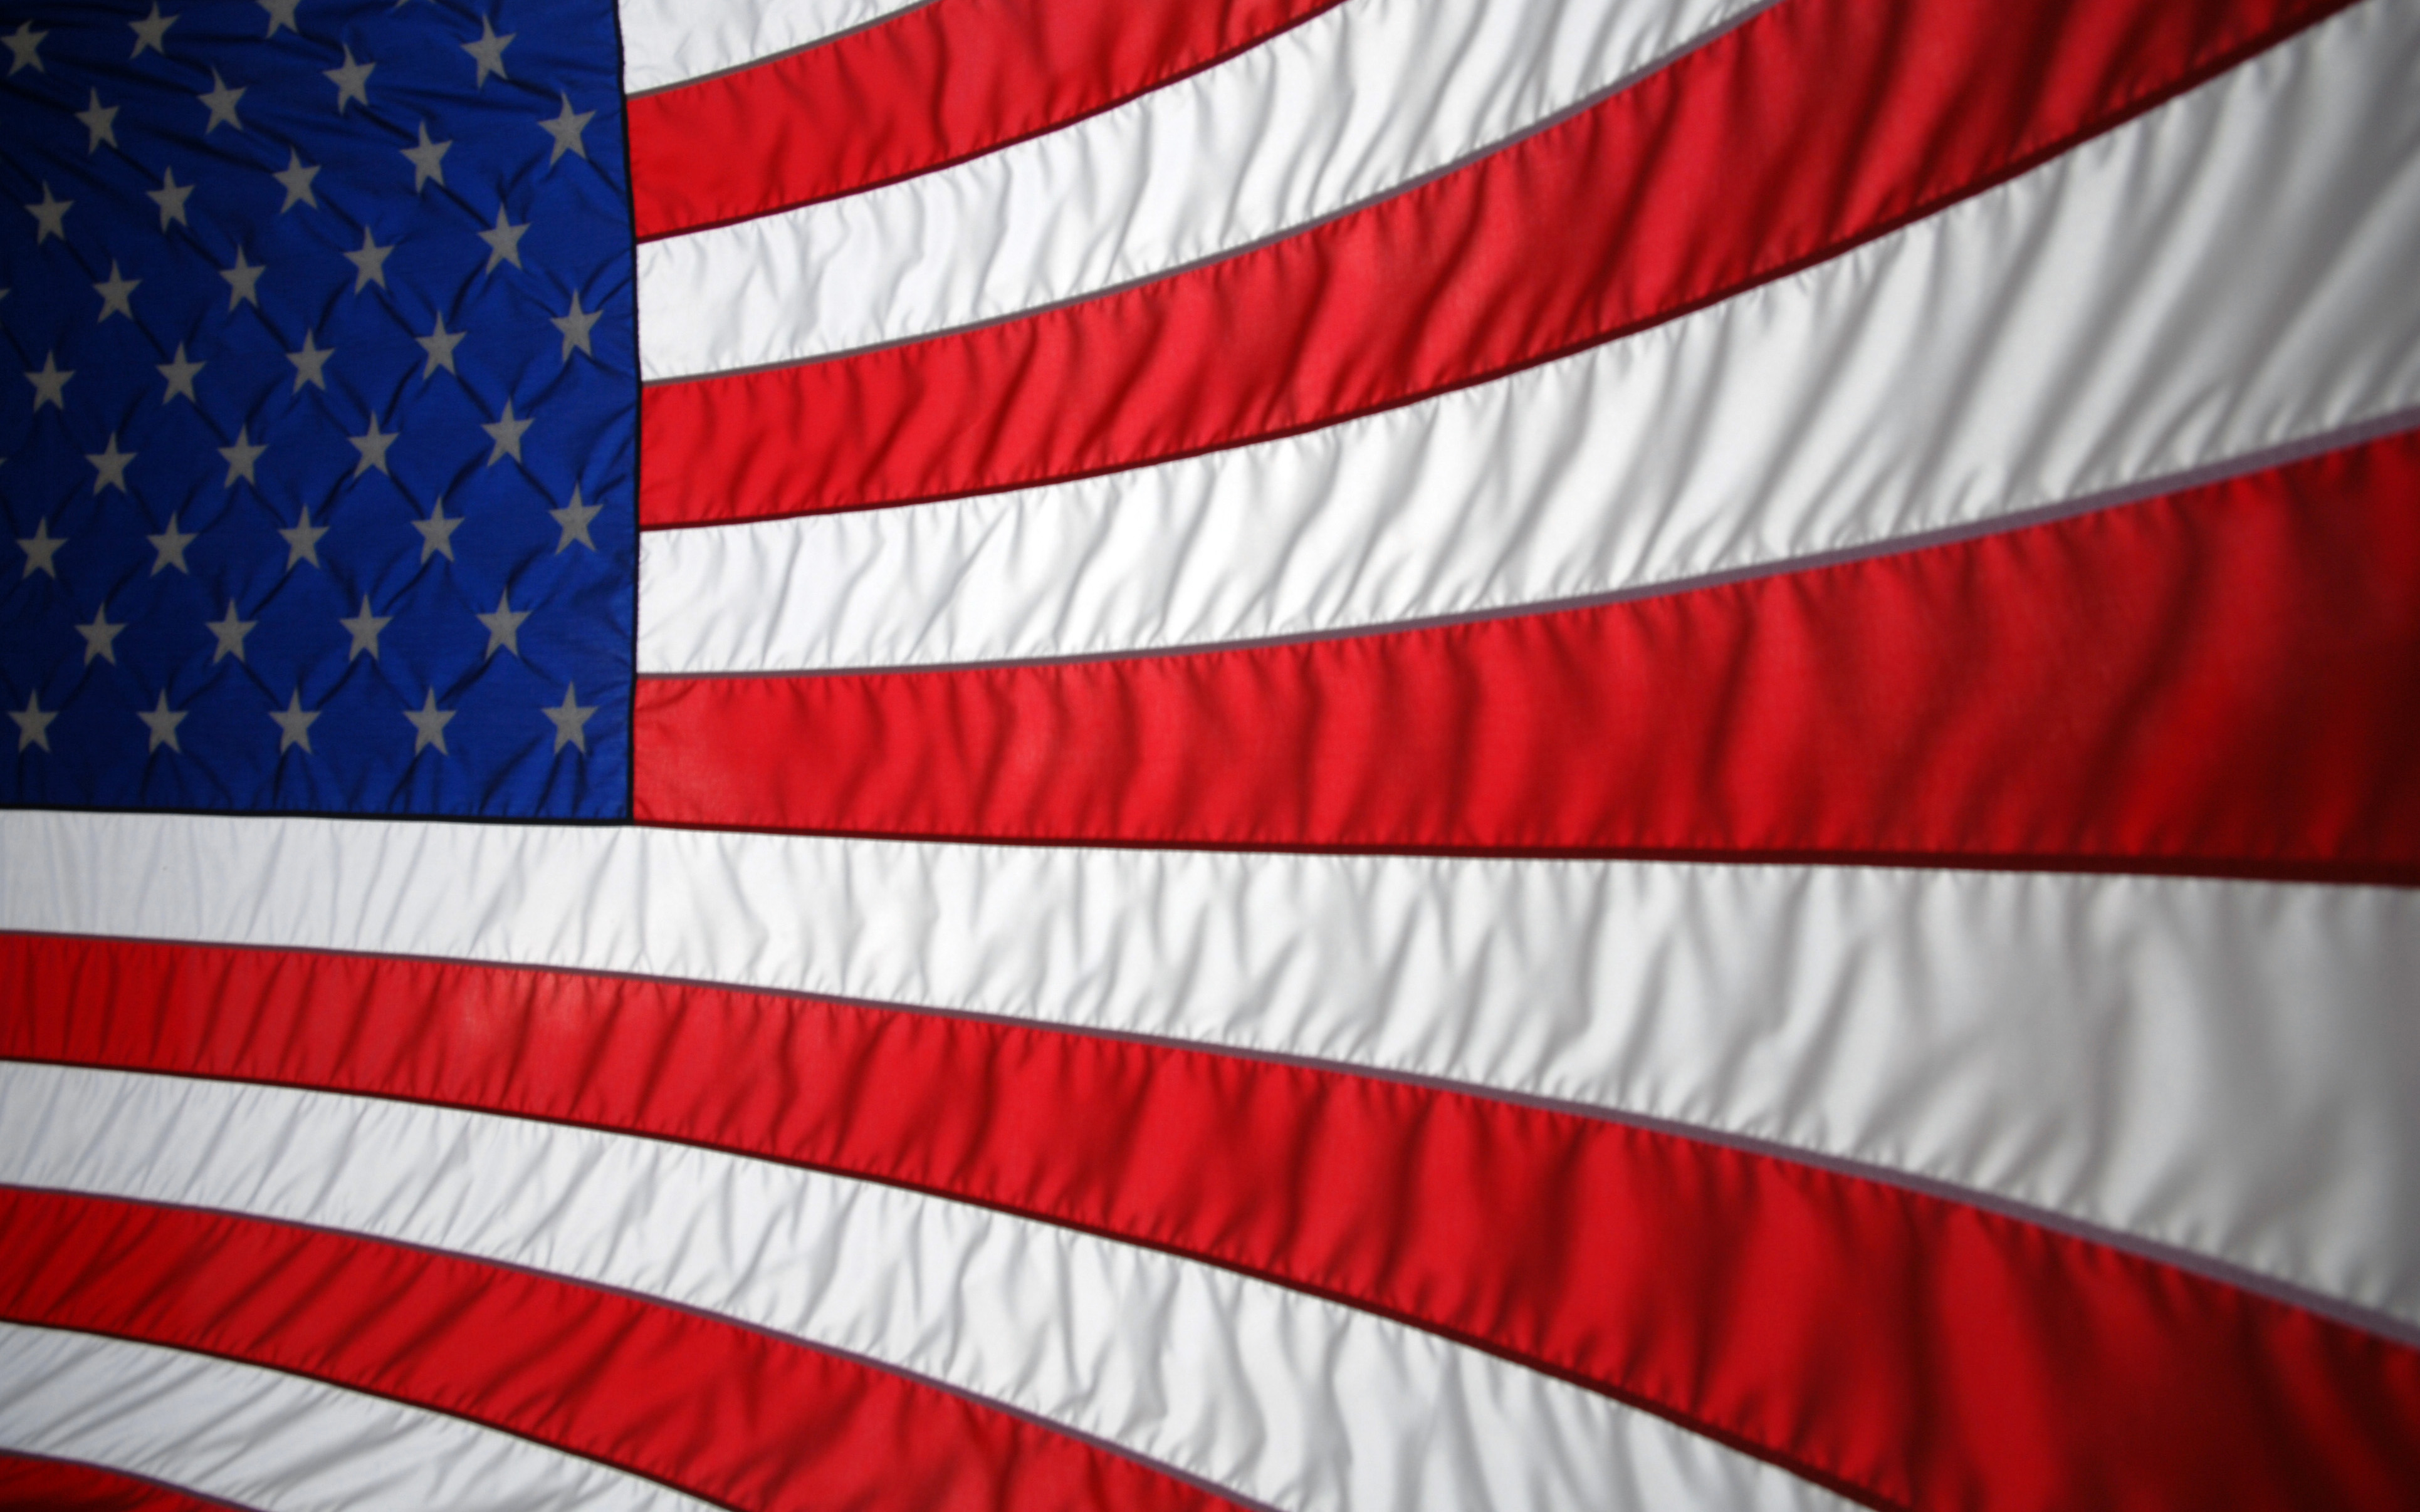 American Flag 4k Ultra Hd Wallpaper Background Image 3861x2413 Id 274472 Wallpaper Abyss